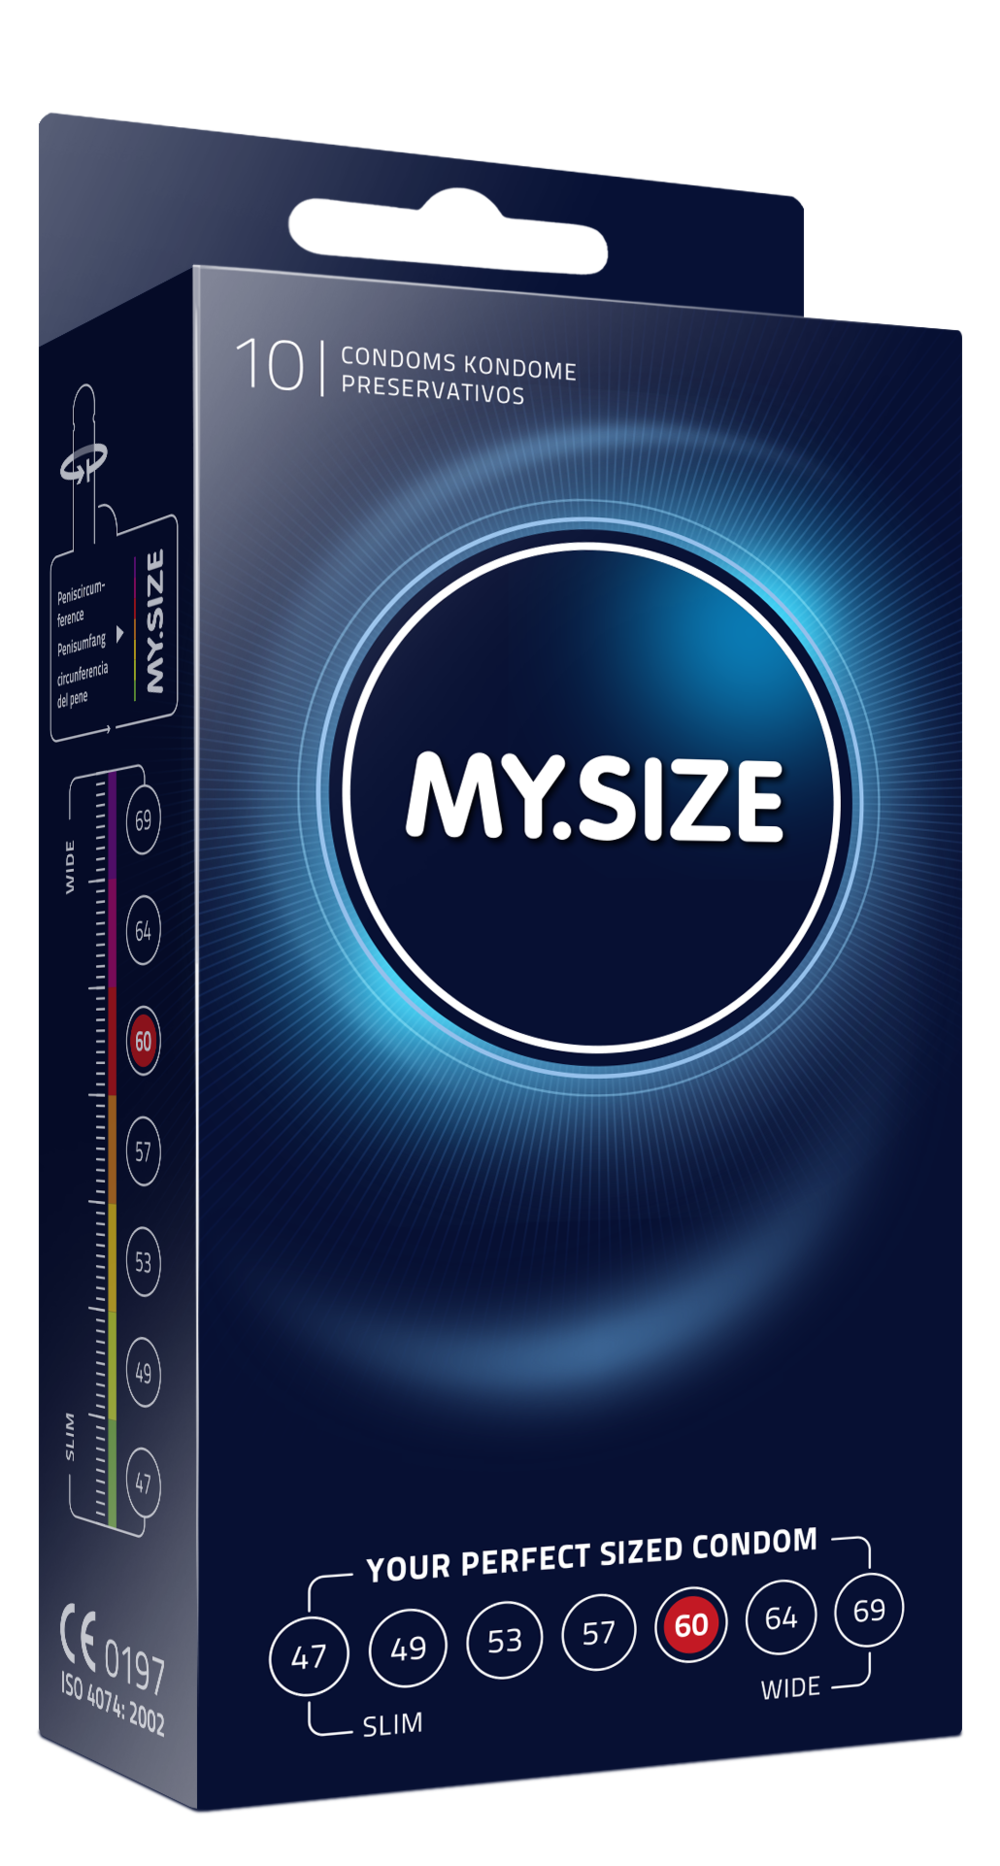 MY.SIZE condoms 10 pack size 60